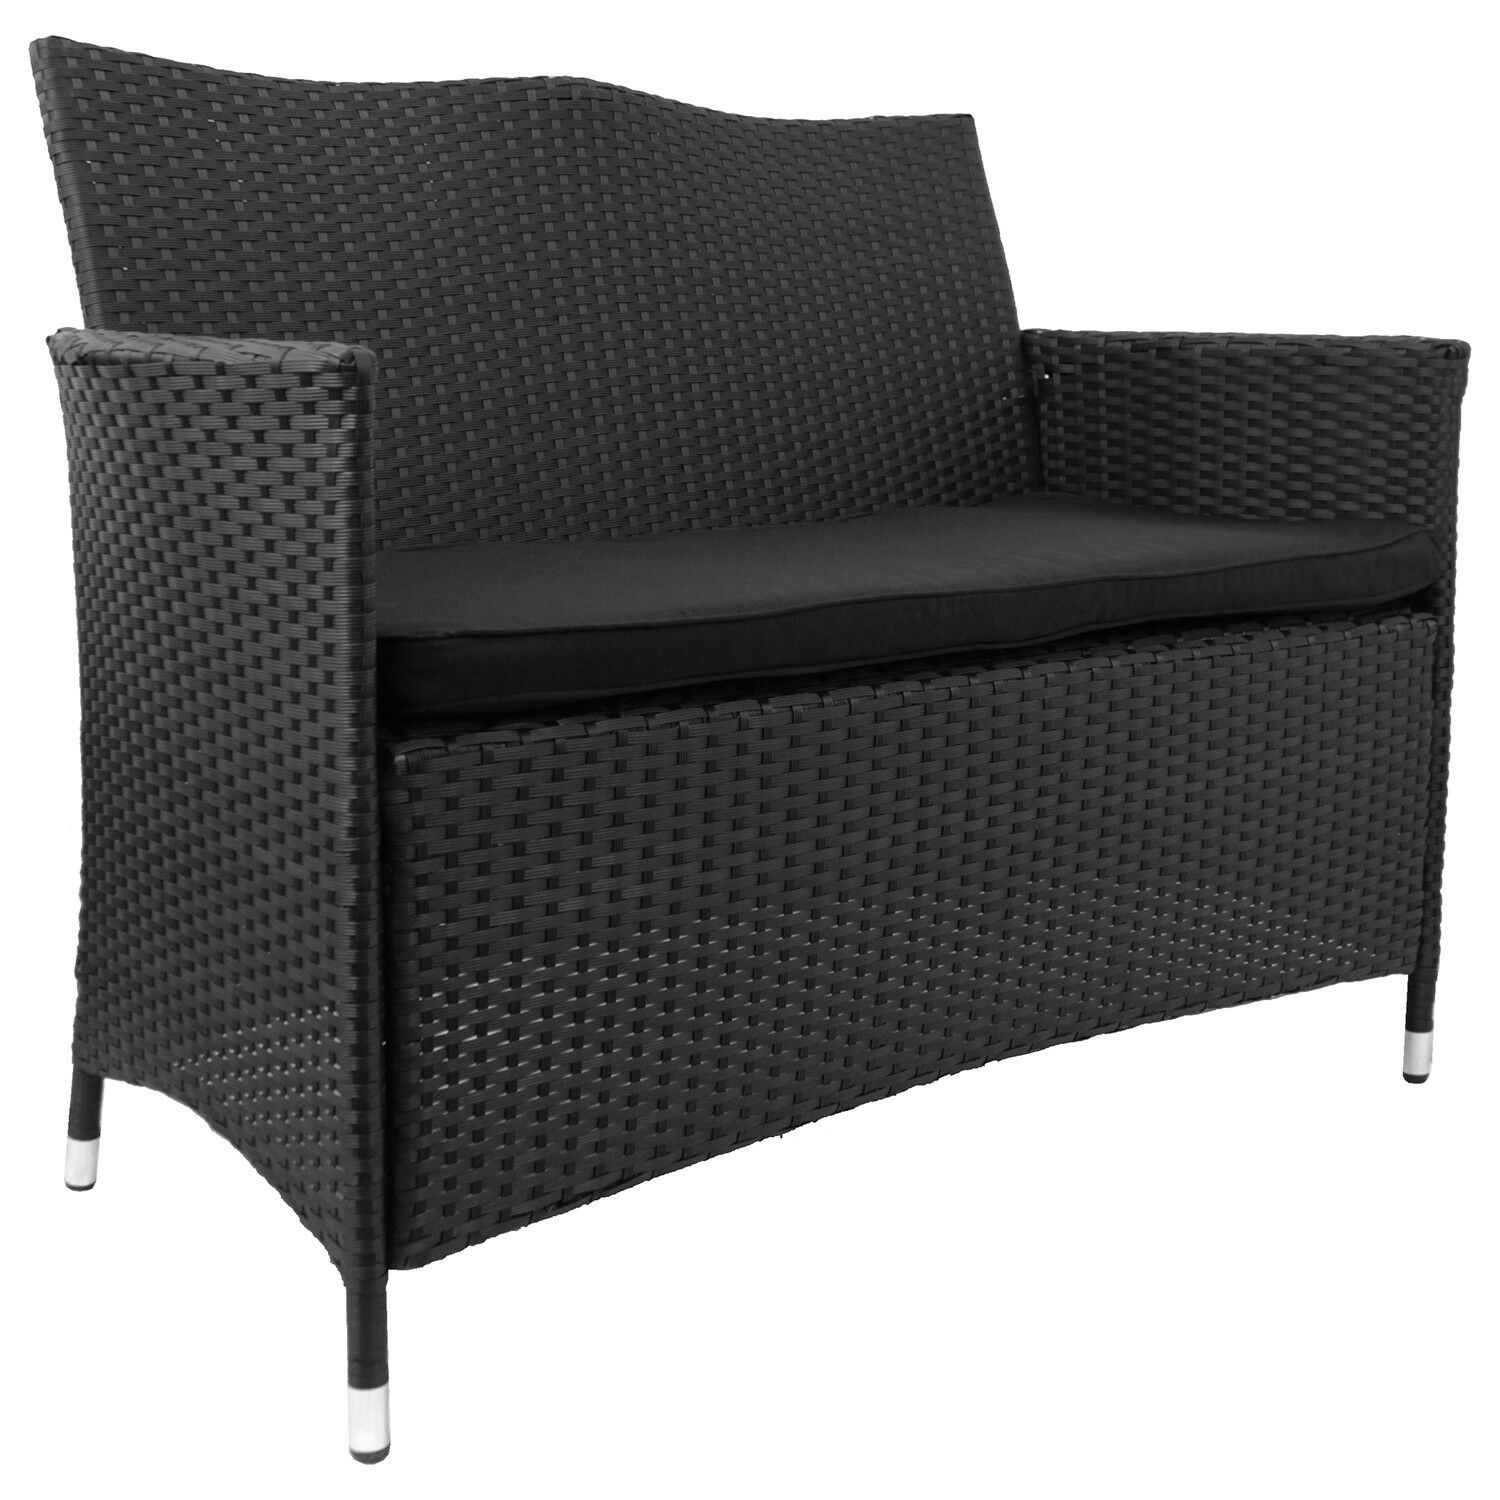 gartenbank sitzbank bank wetterfest metall polyrattan inkl sitzkissen schwarz eur 99 99. Black Bedroom Furniture Sets. Home Design Ideas